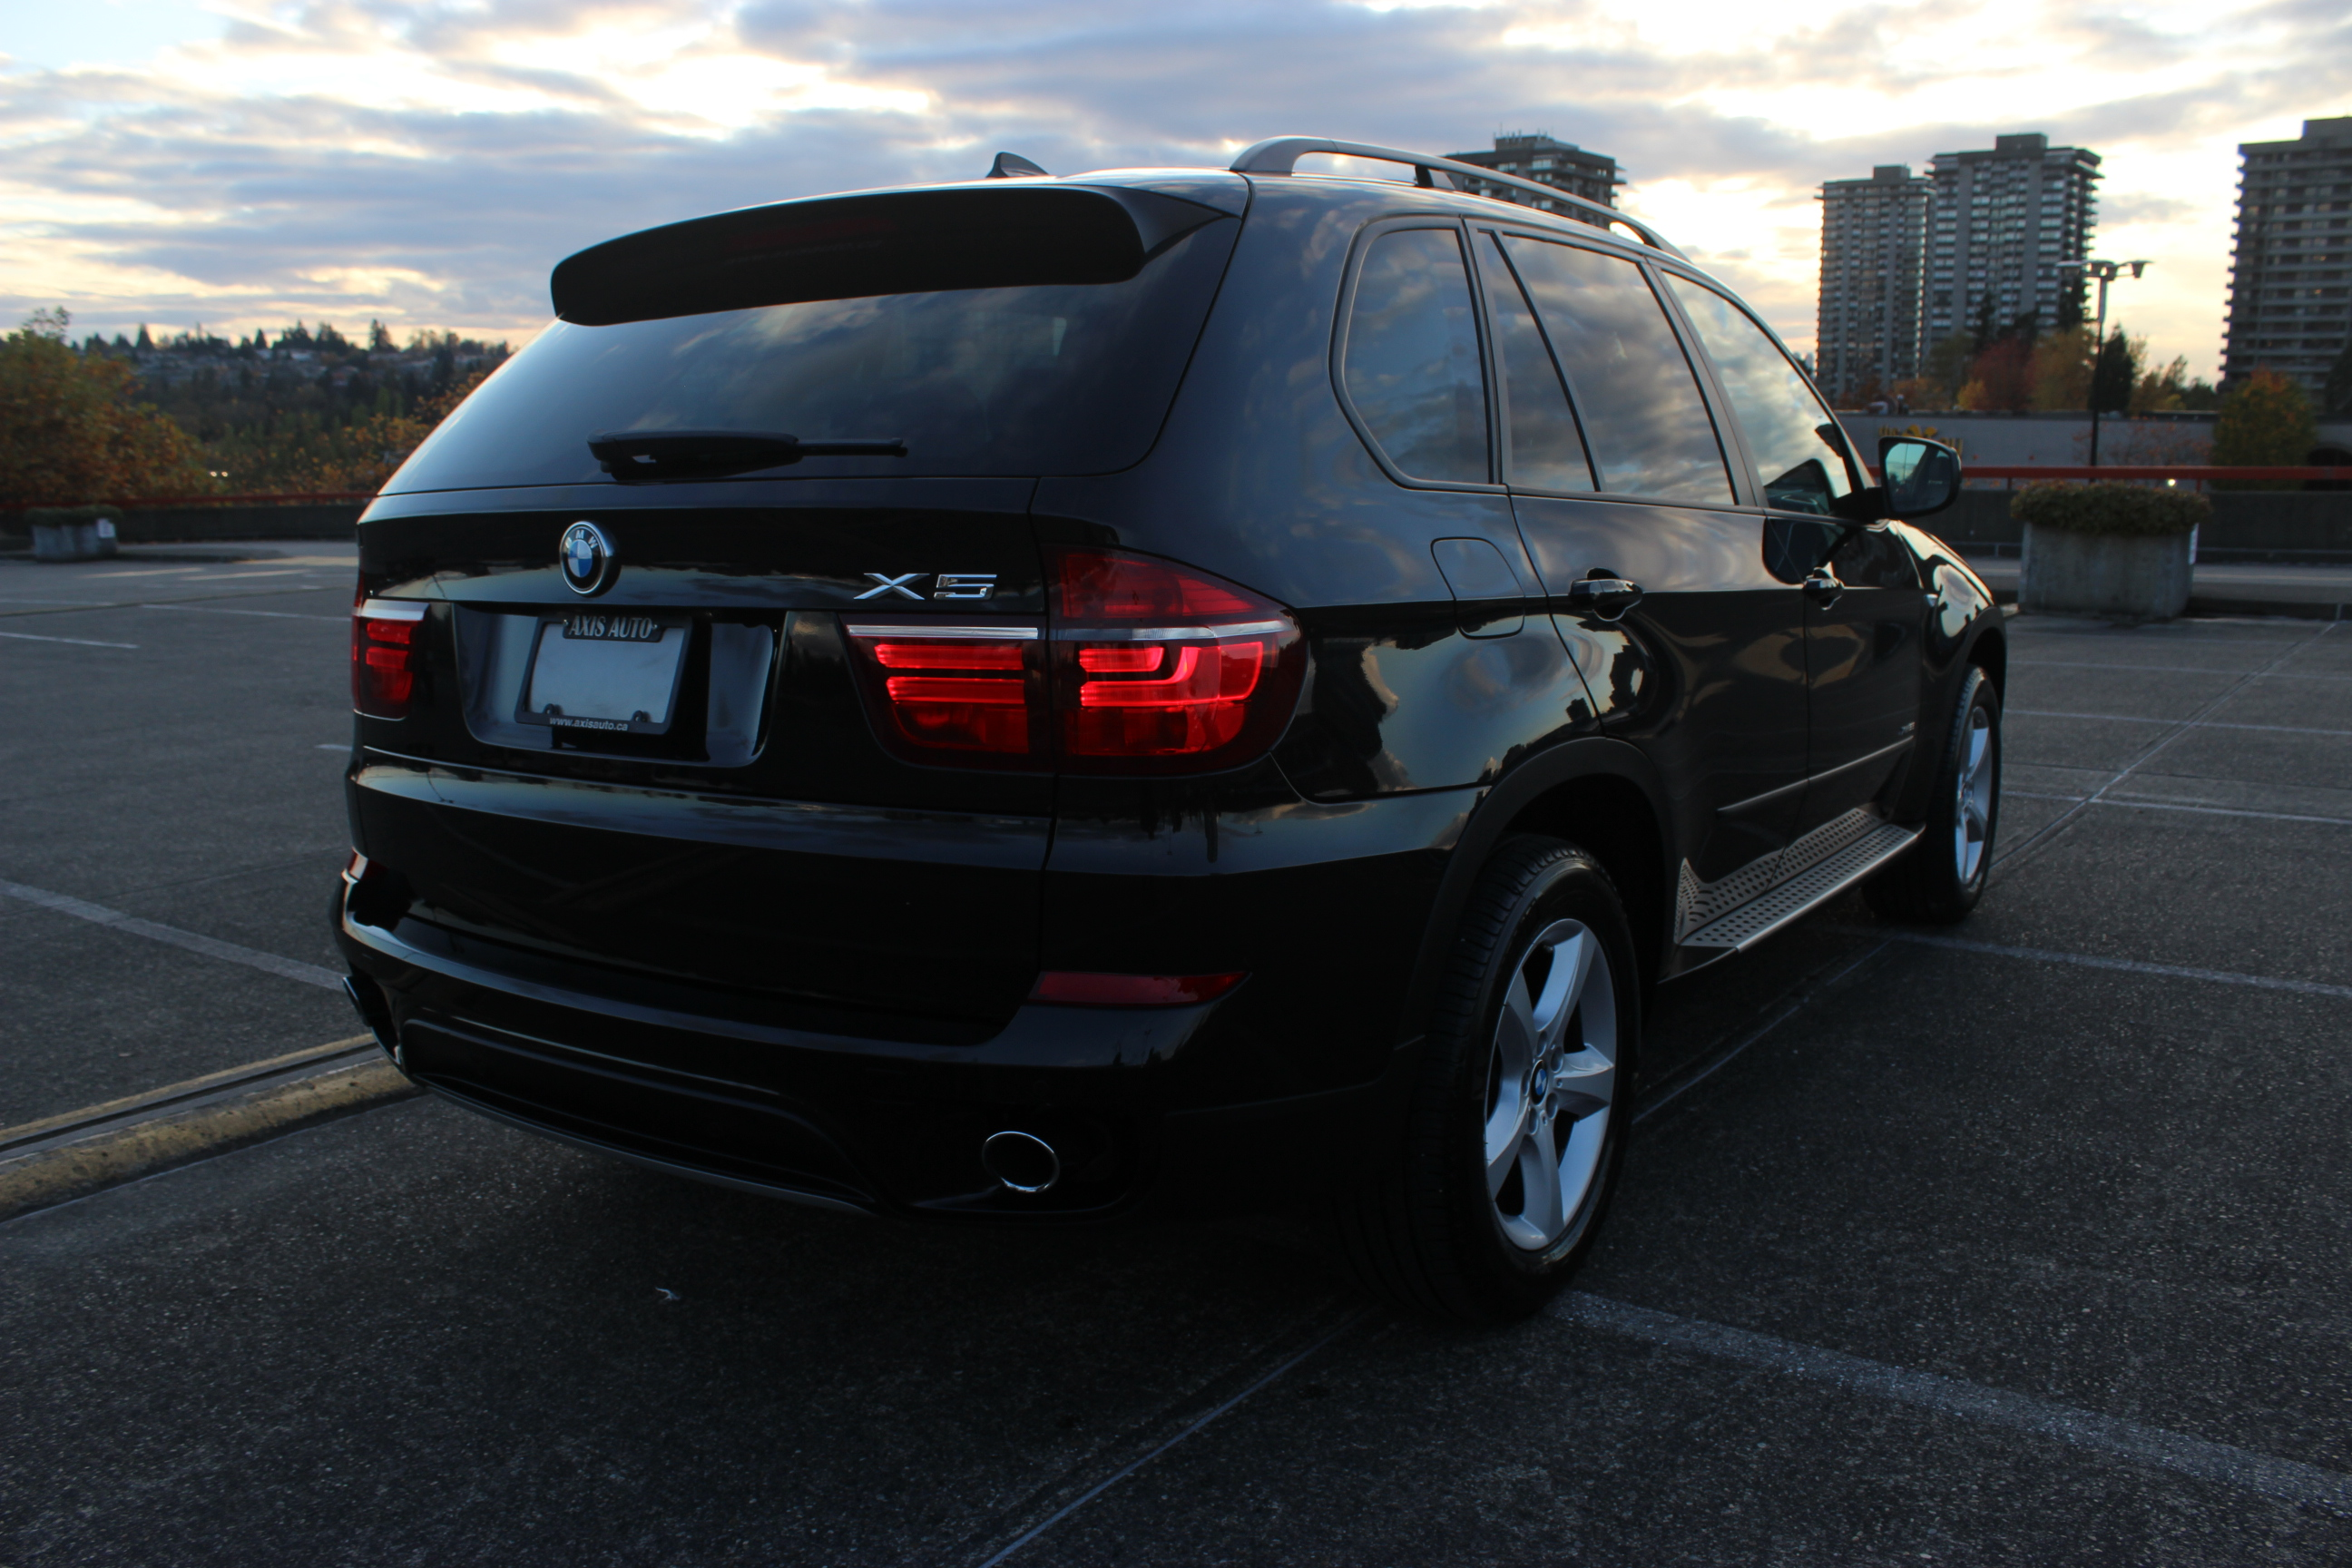 2011 bmw x5 xdrive35i axis auto. Black Bedroom Furniture Sets. Home Design Ideas